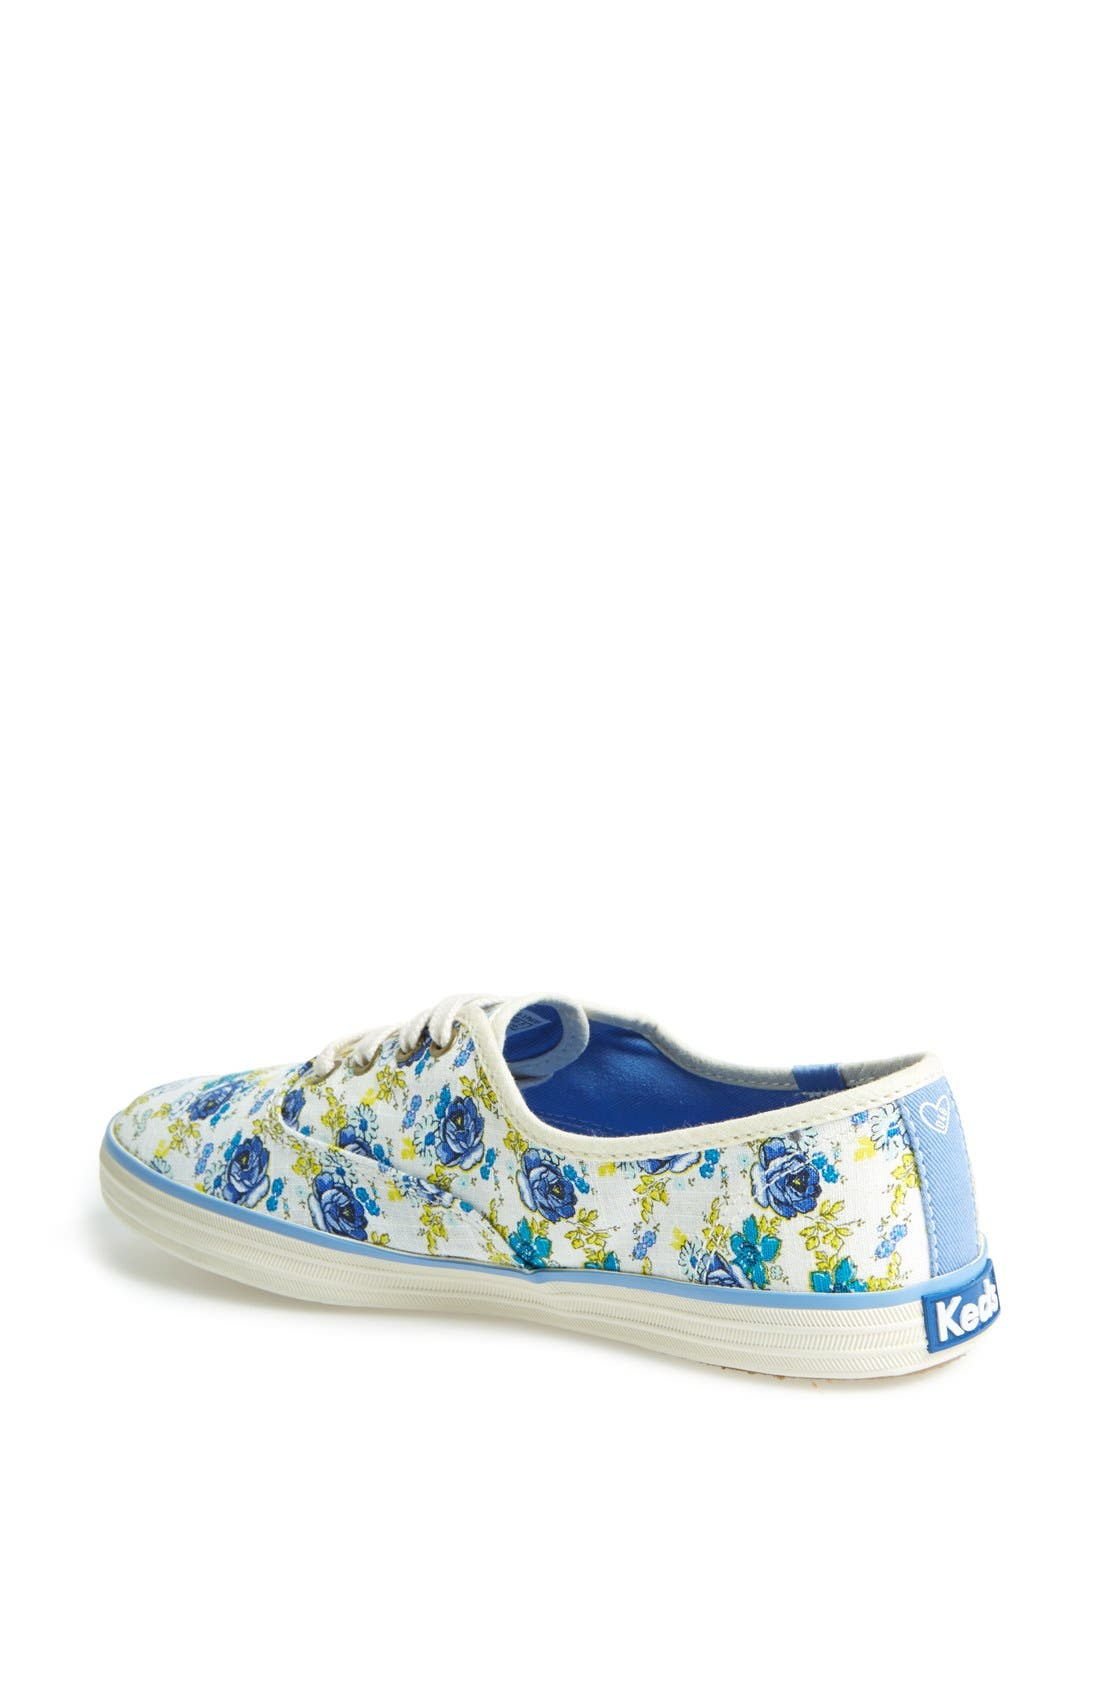 Alternate Image 2  - Keds® Taylor Swift 'Champion Floral' Sneaker (Women)